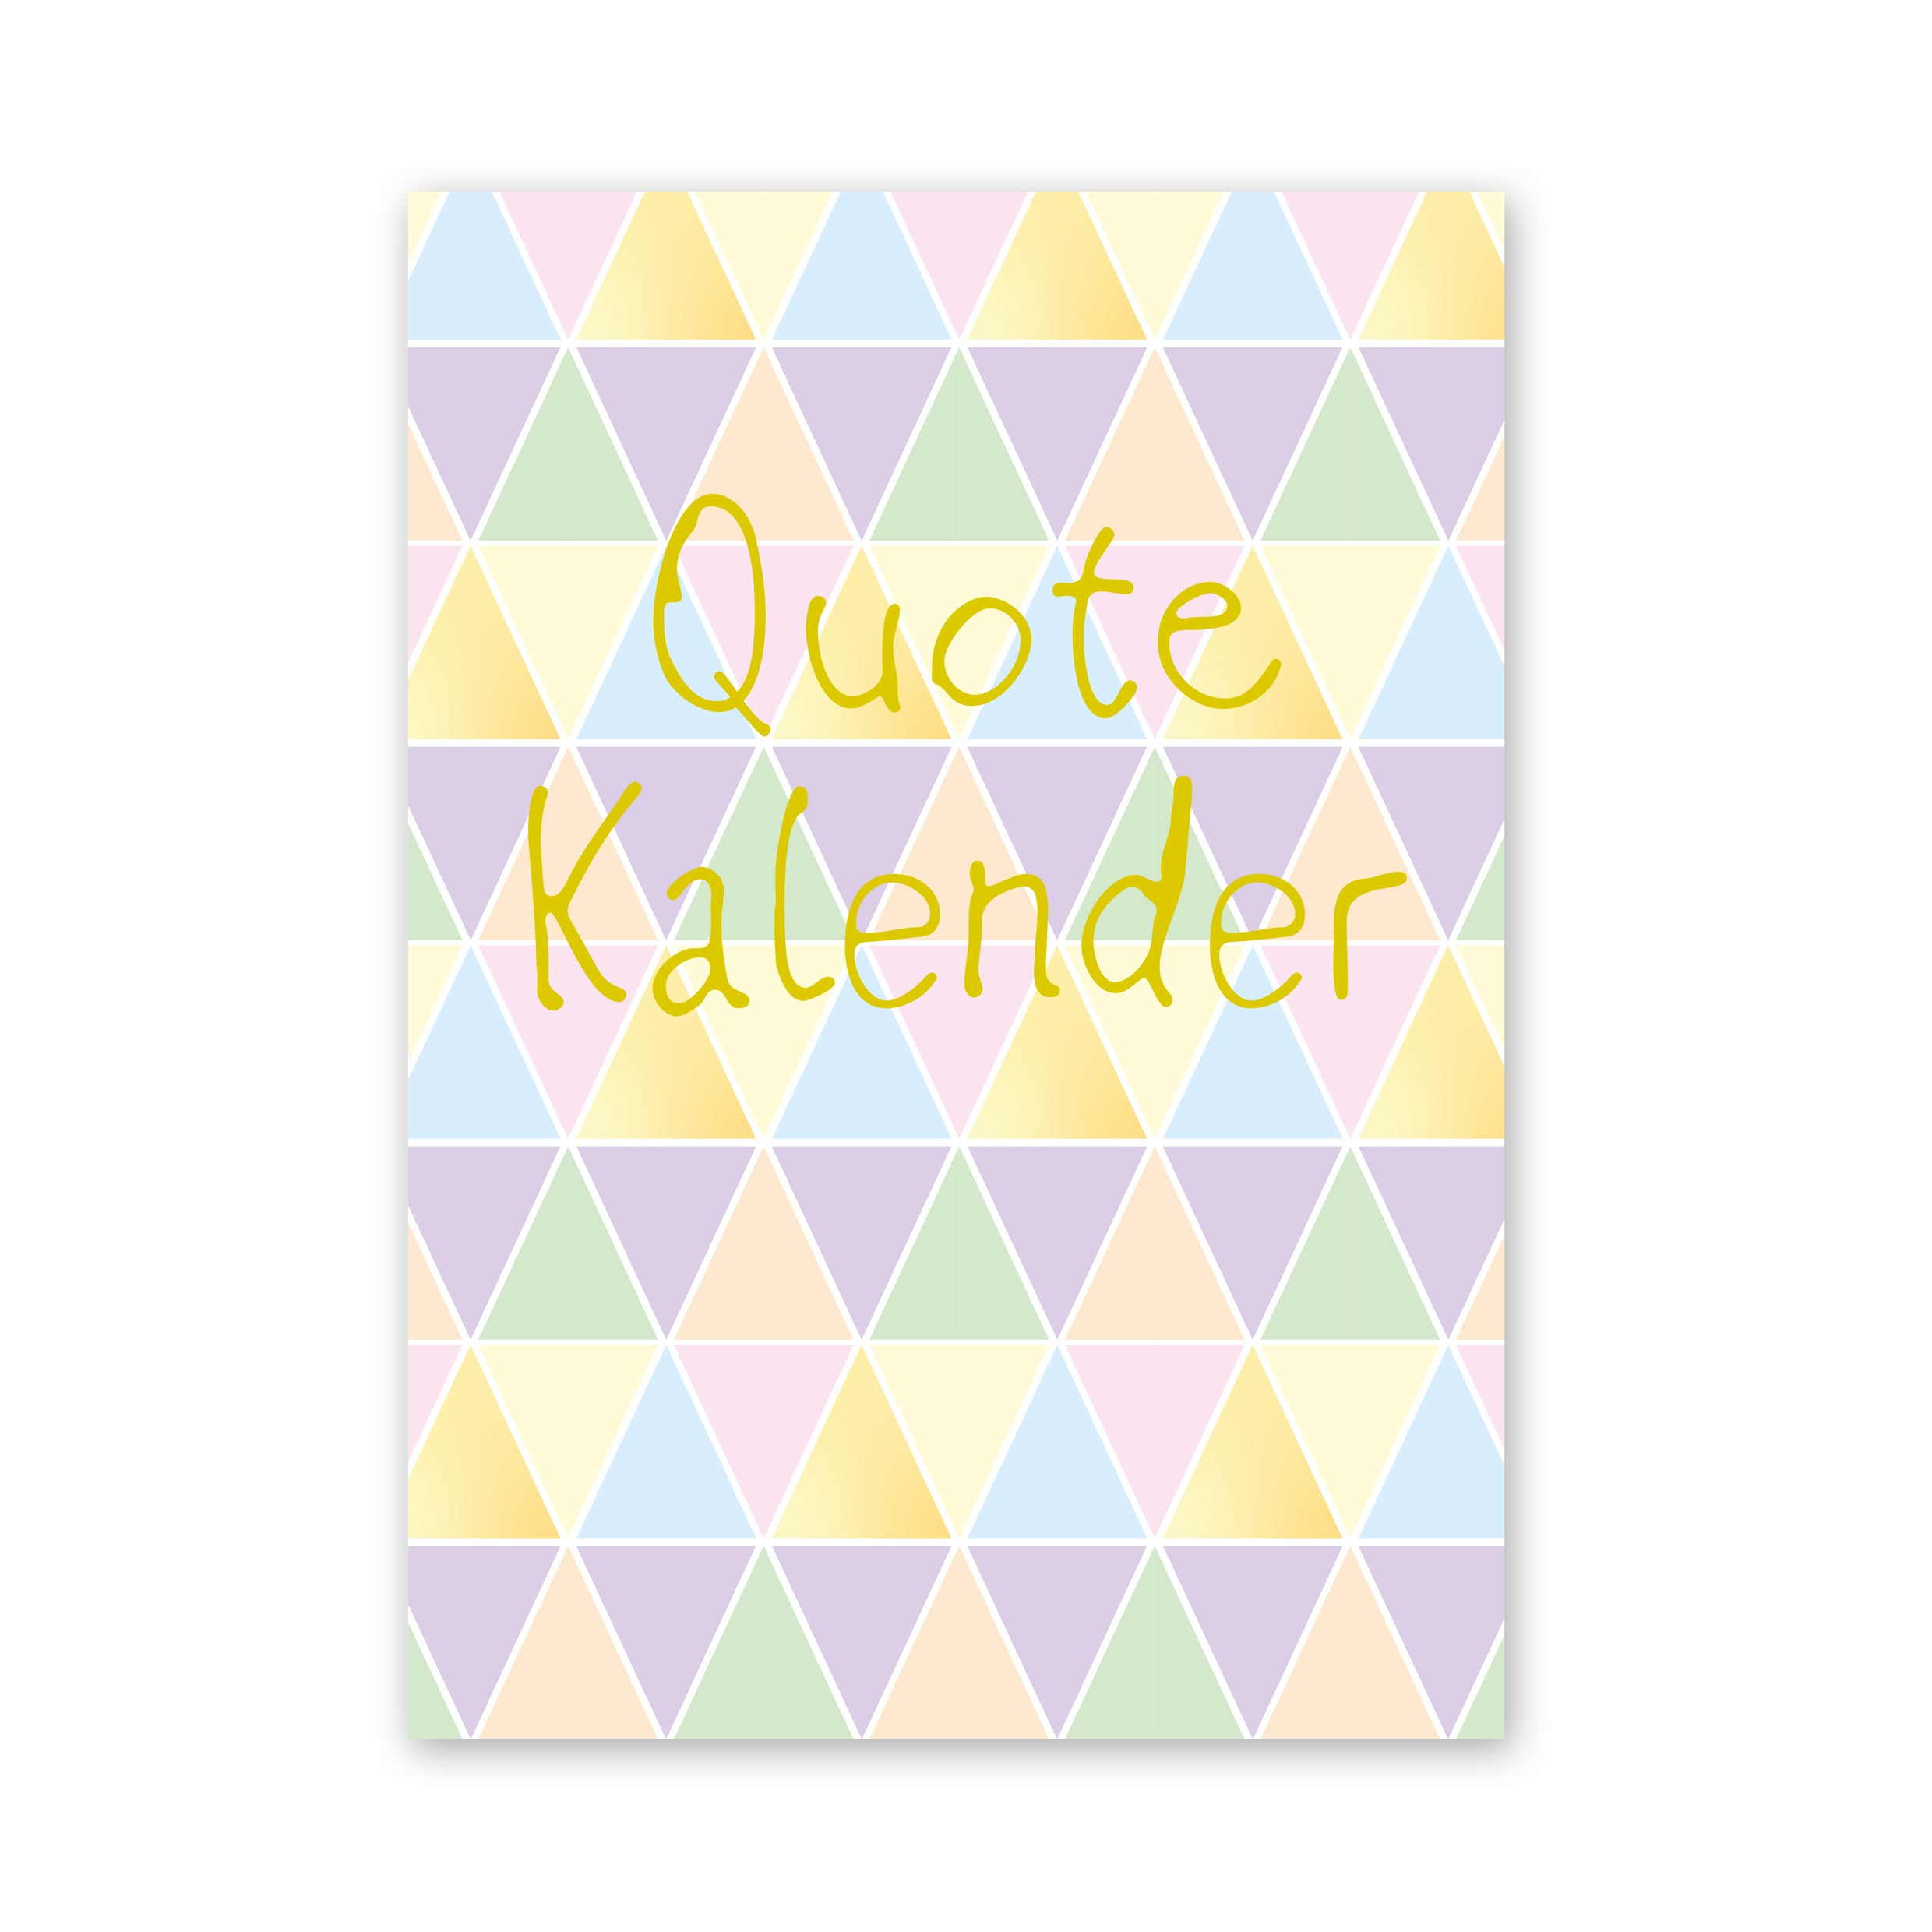 Quote kalender